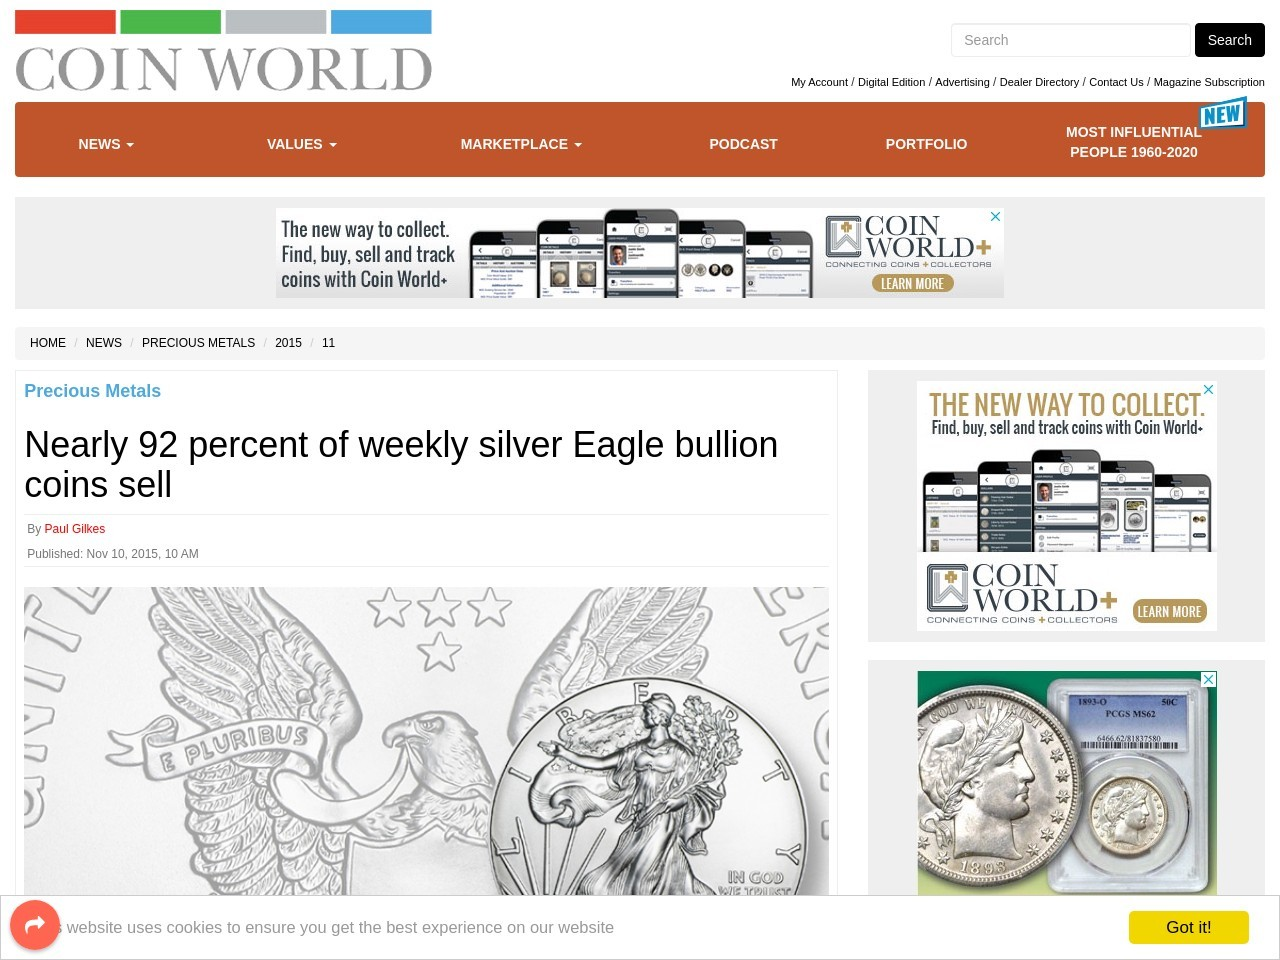 Nearly 92 percent of weekly silver Eagle bullion coins sell